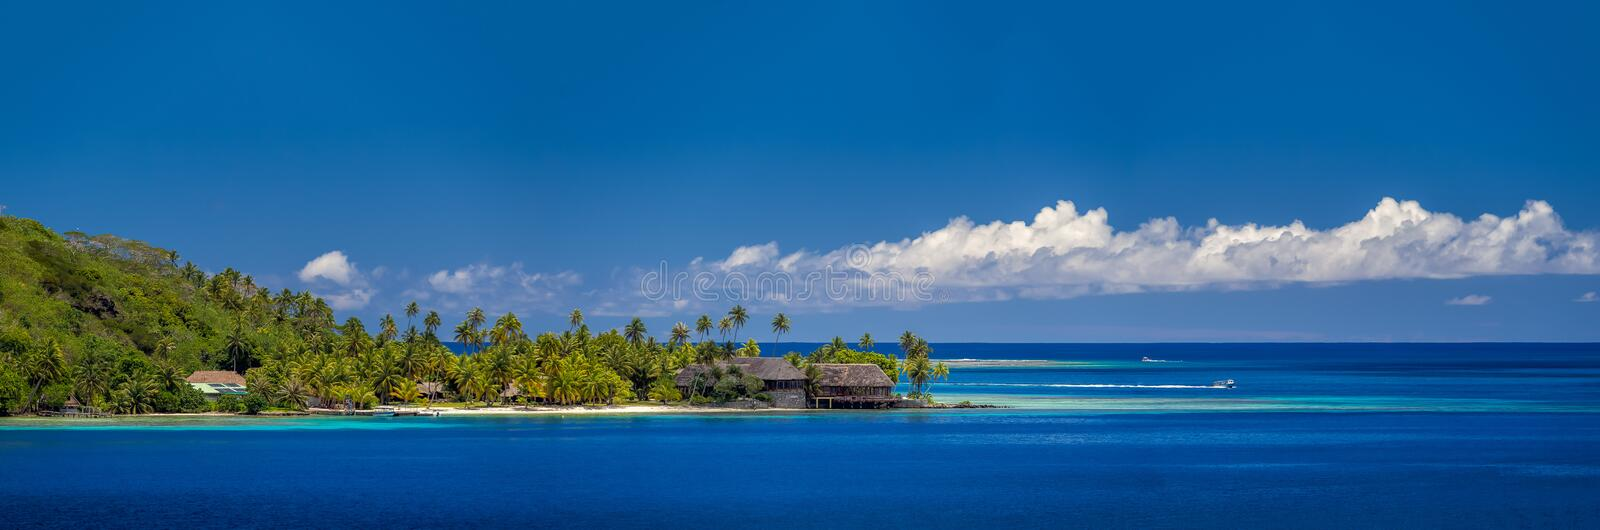 French Polynesia. The lagoon at Bora Bora French Polynesia stock photo